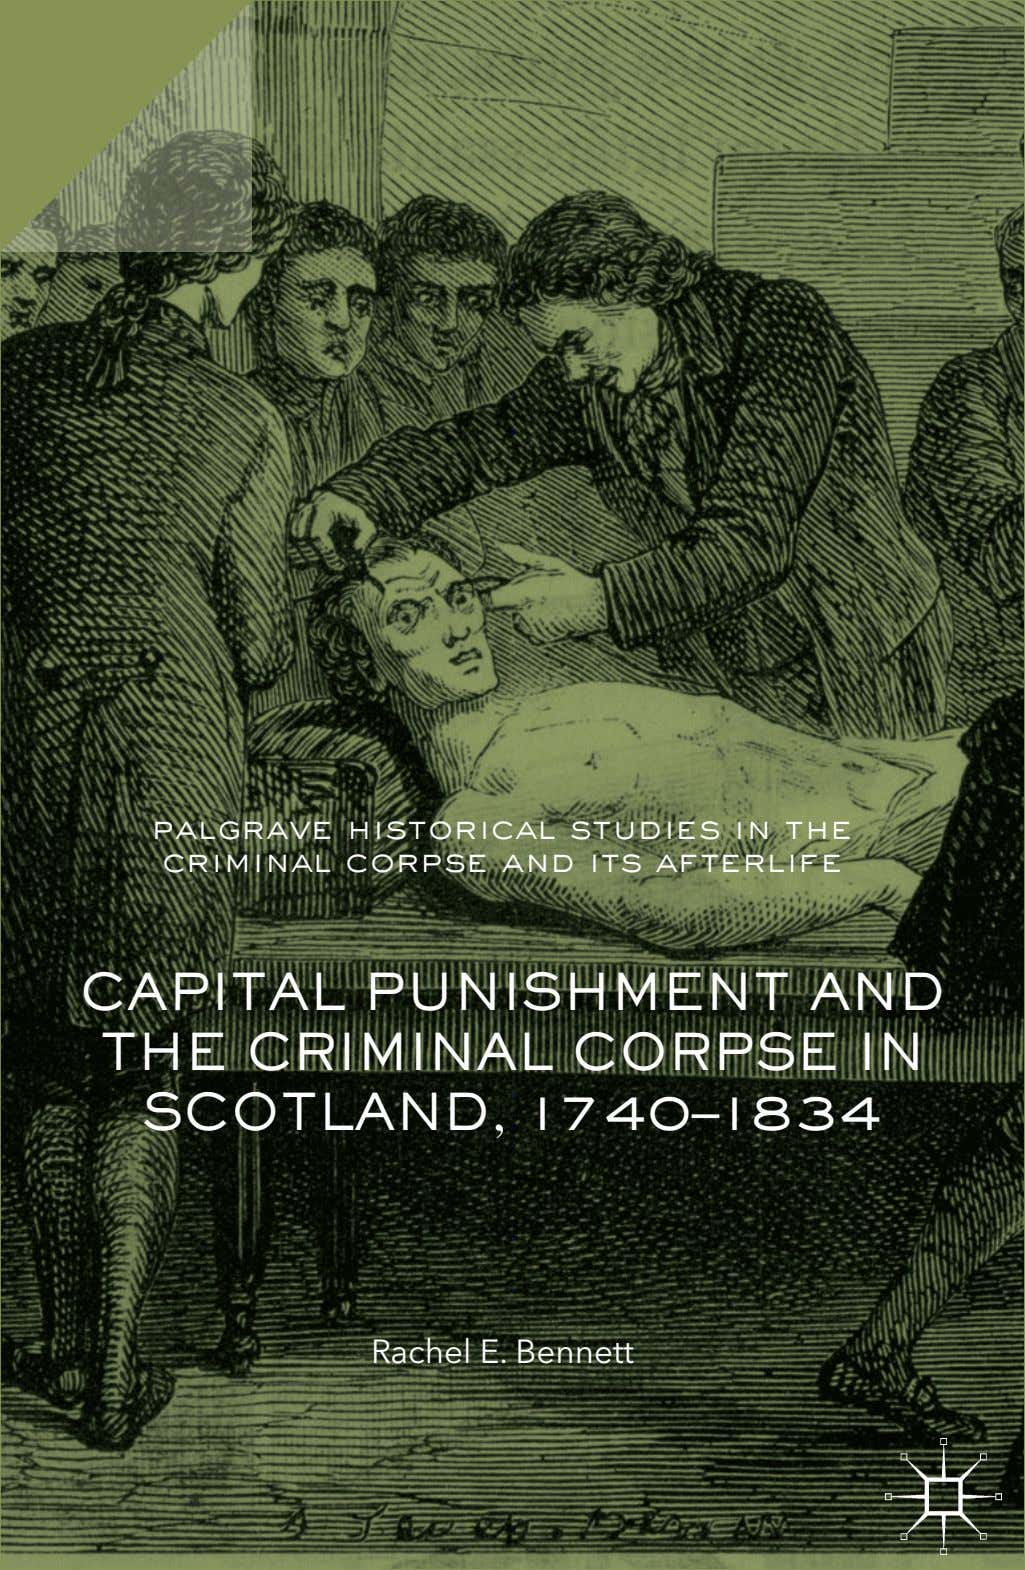 palgrave historical studies in the criminal corpse and its afterlife CAPITAL PUNISHMENT AND THE CRIMINAL